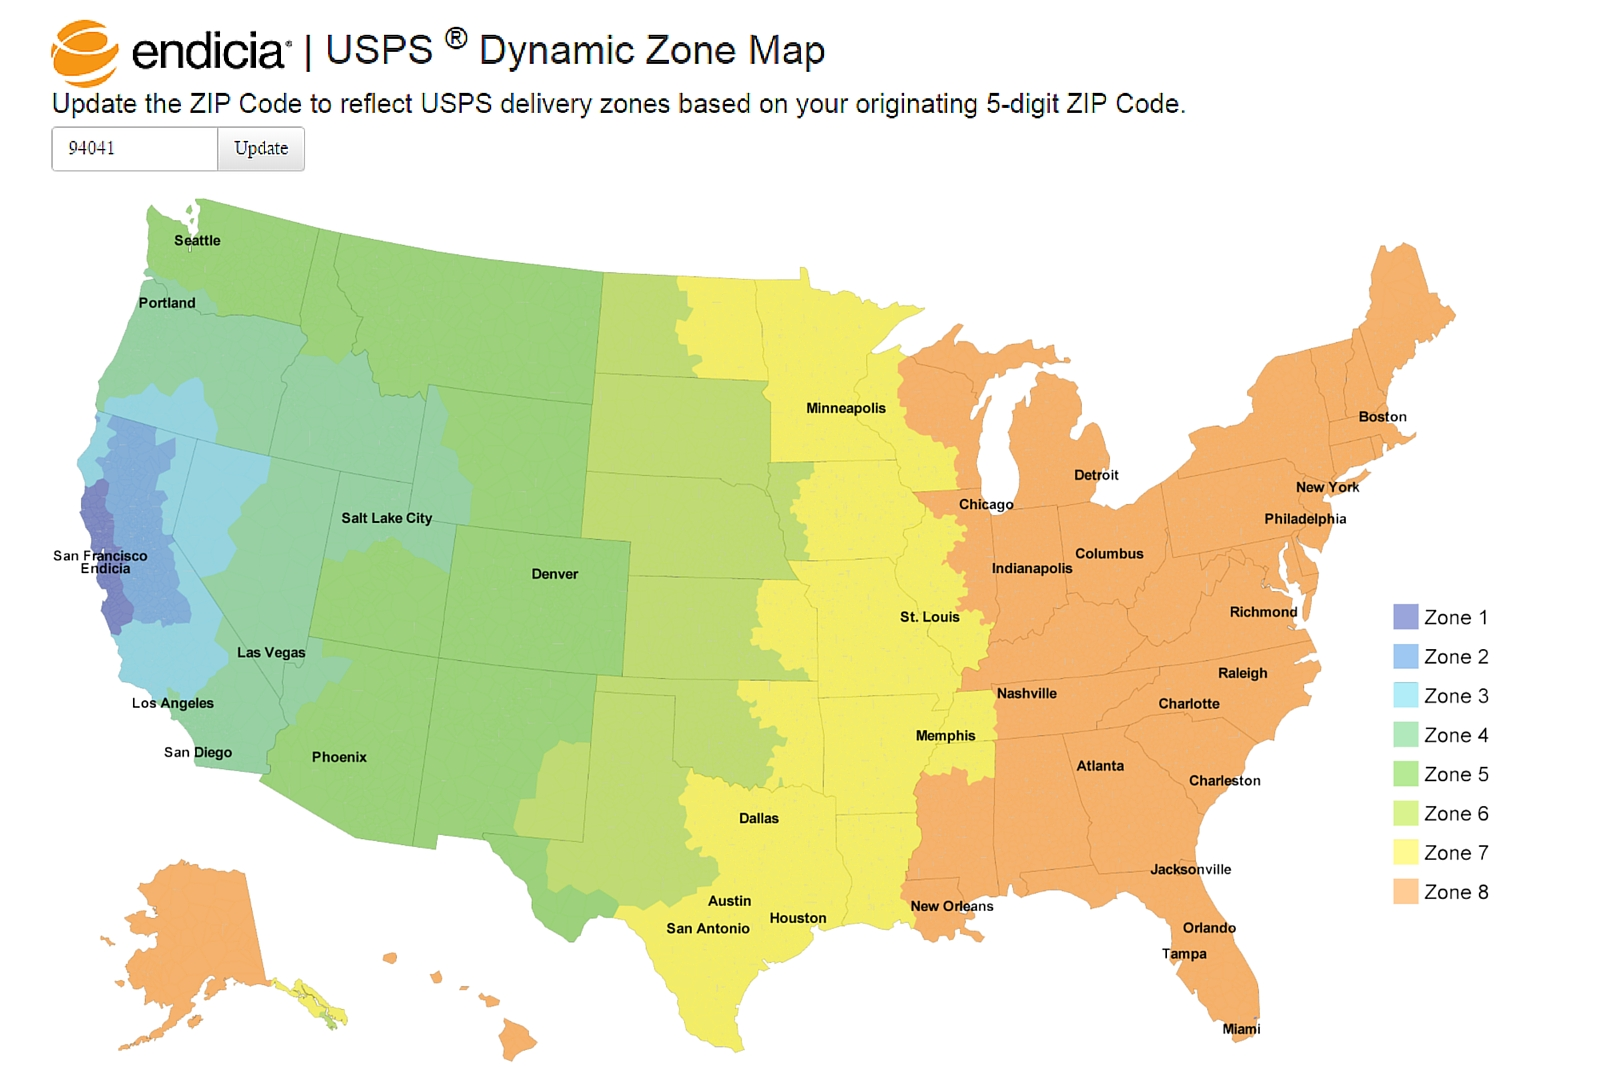 endicia s dynamic zone map takes the guesswork out of delivery